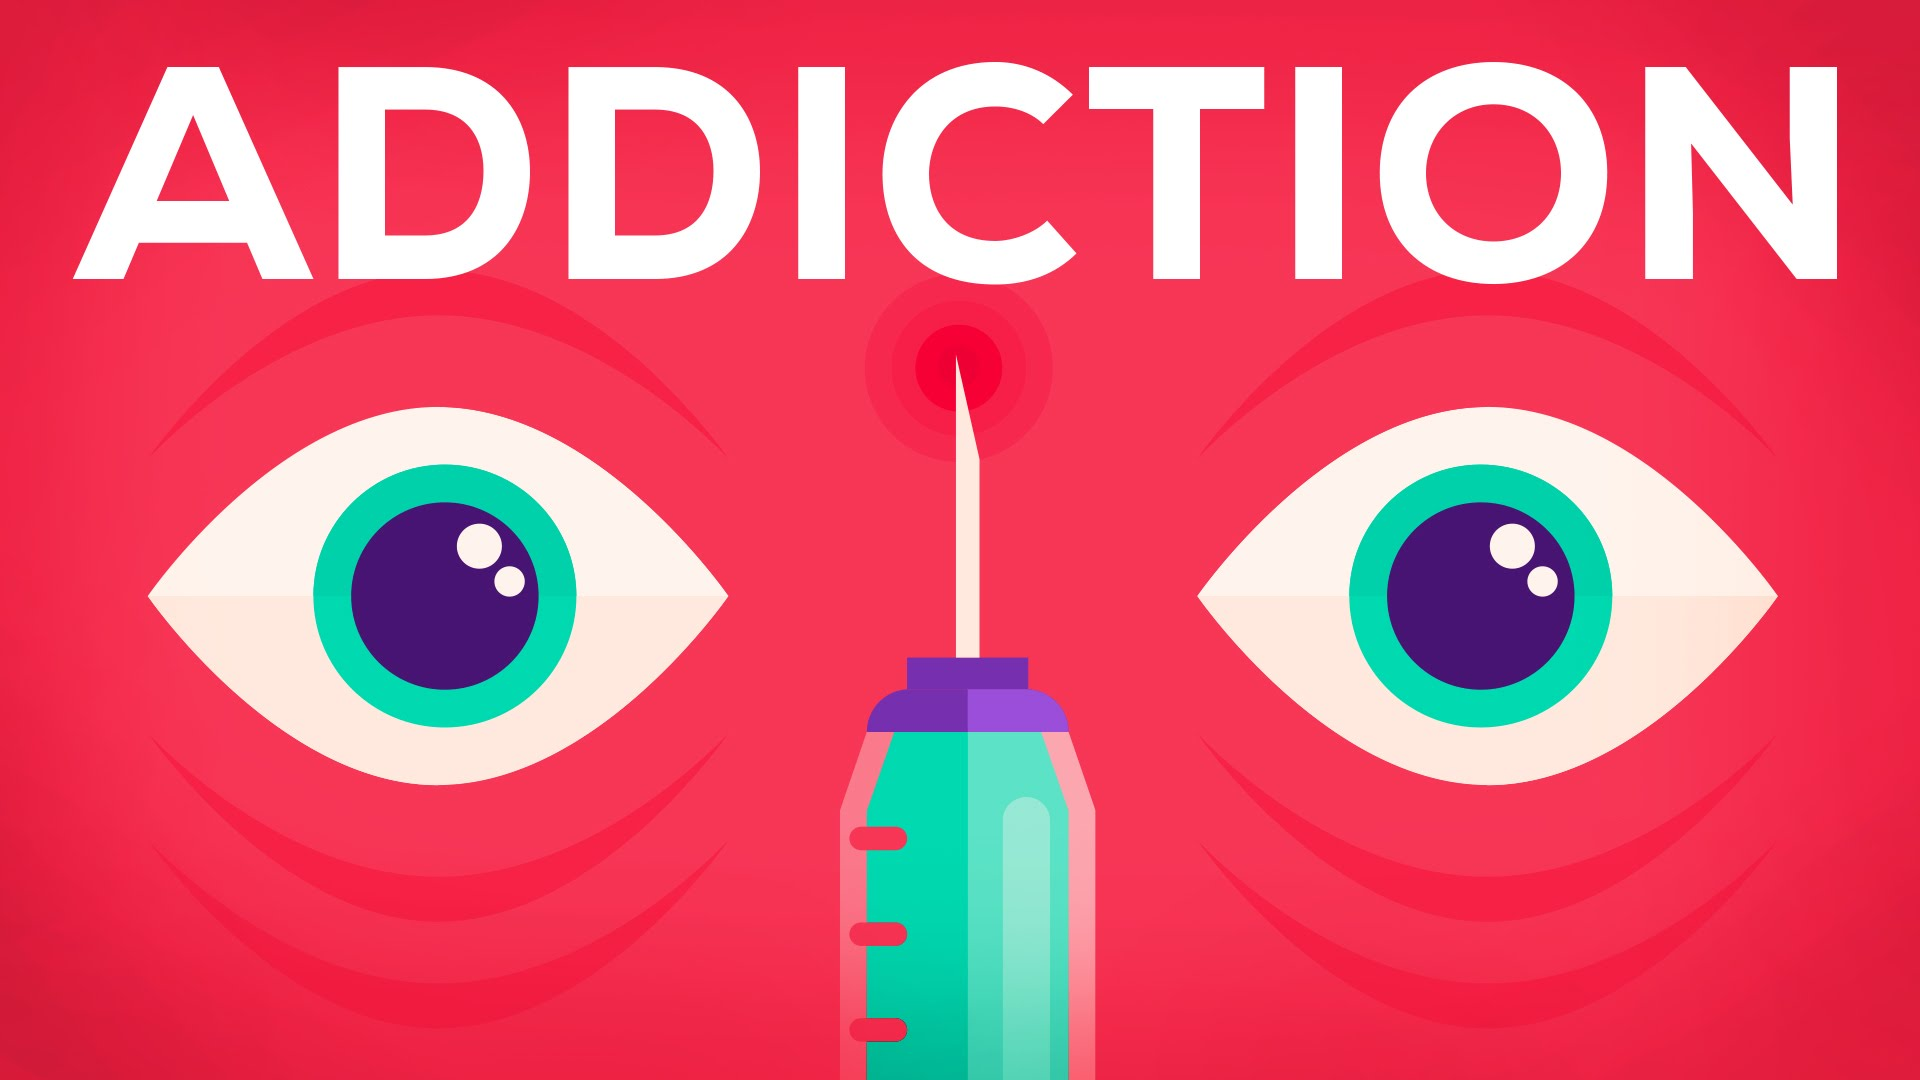 Addiction Treatment Experts Discuss 5 Stressors that Lead to